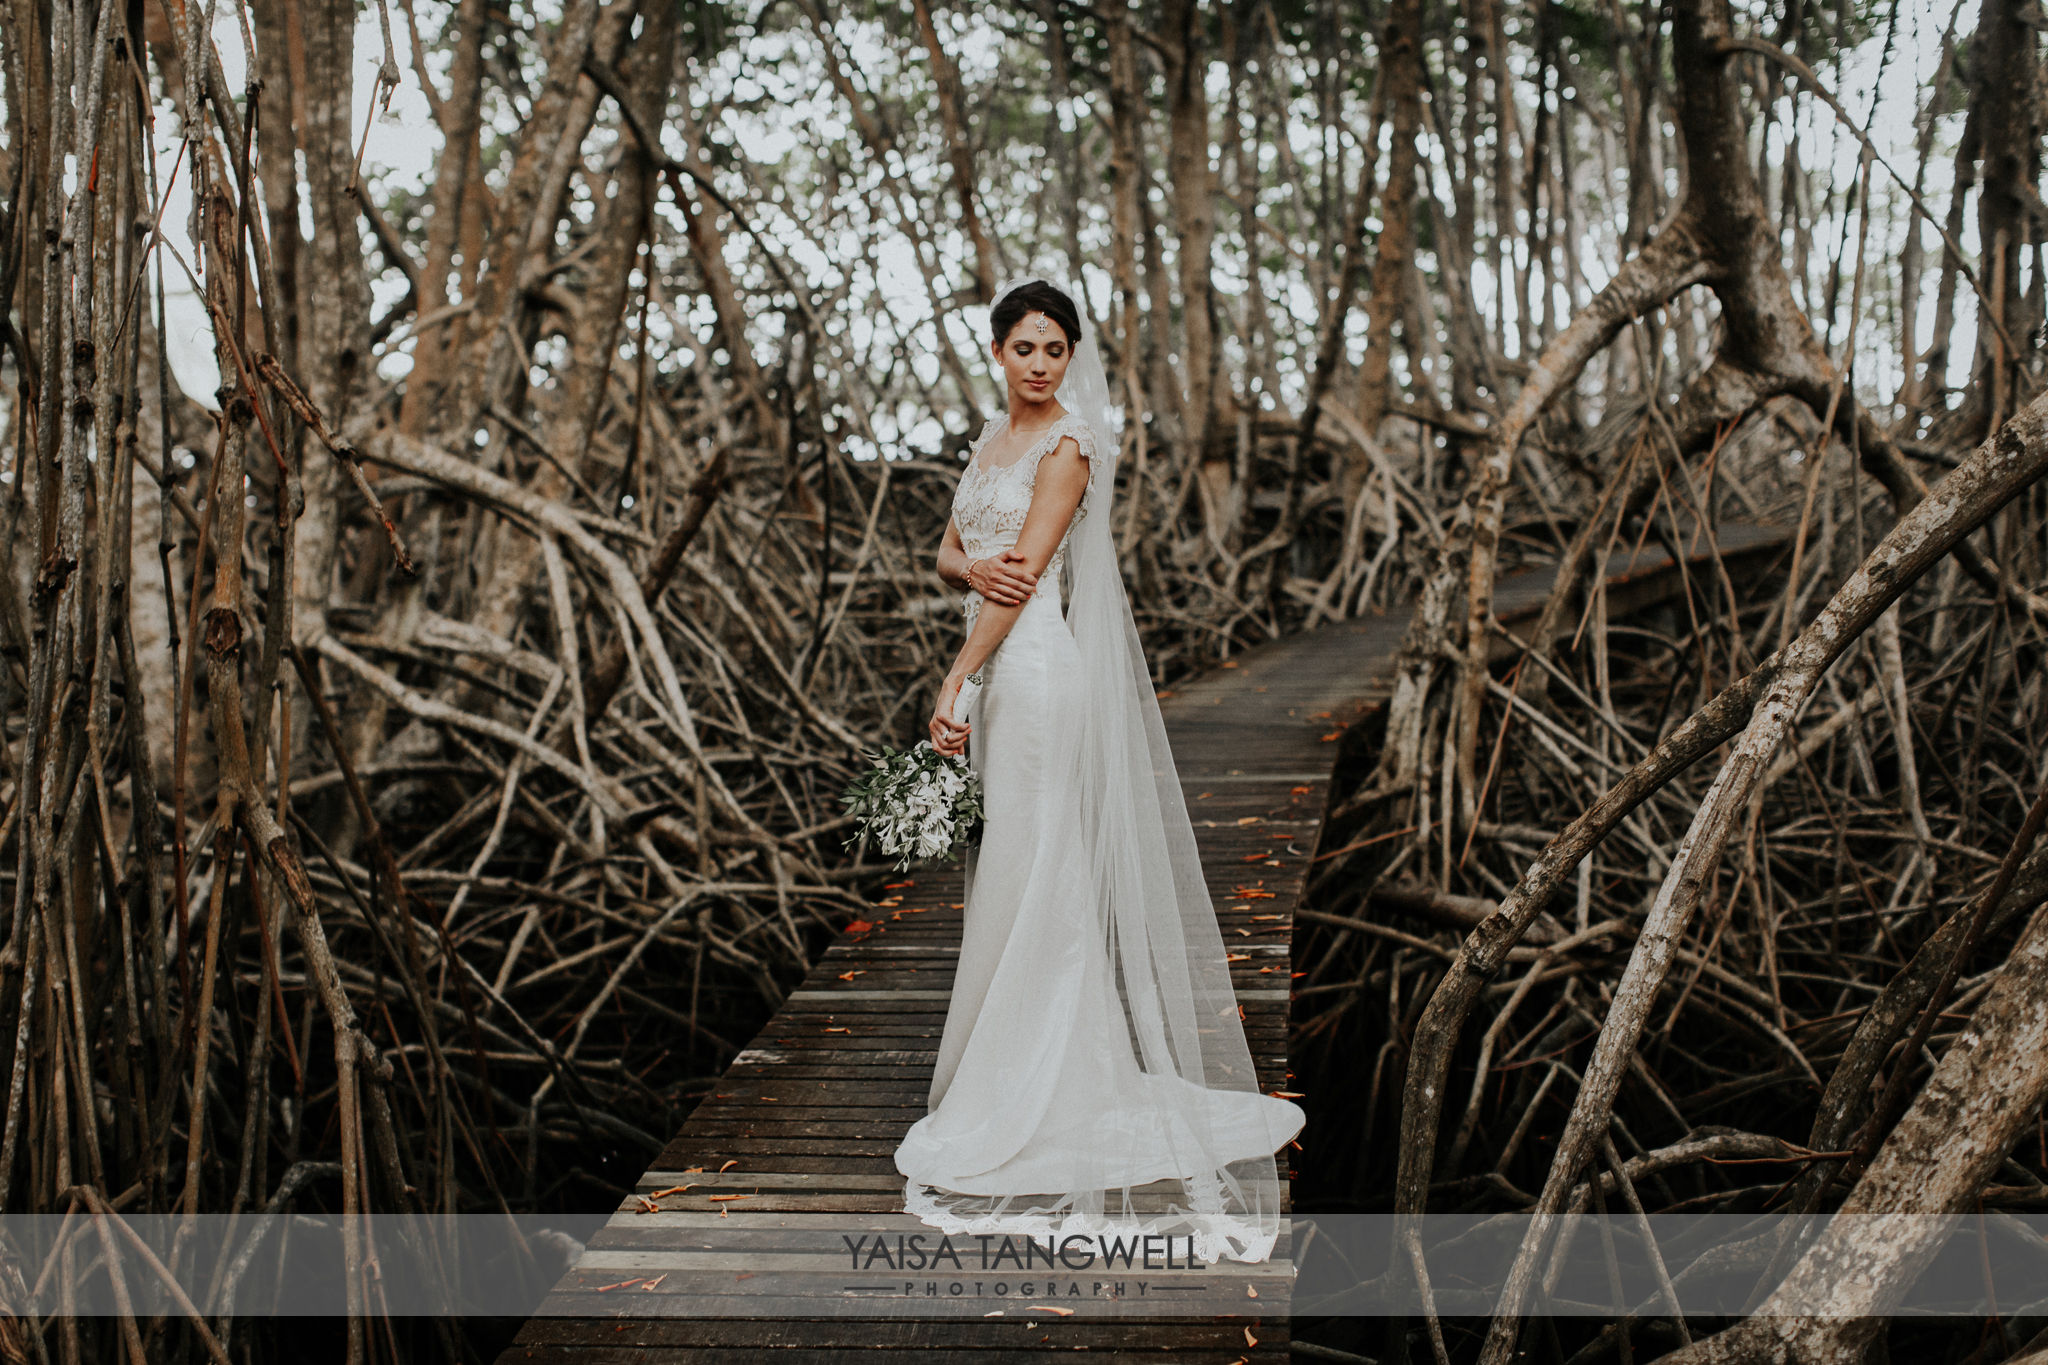 Dhanishtha + Chris wedding photorgraphy in Trinidad and Tobago